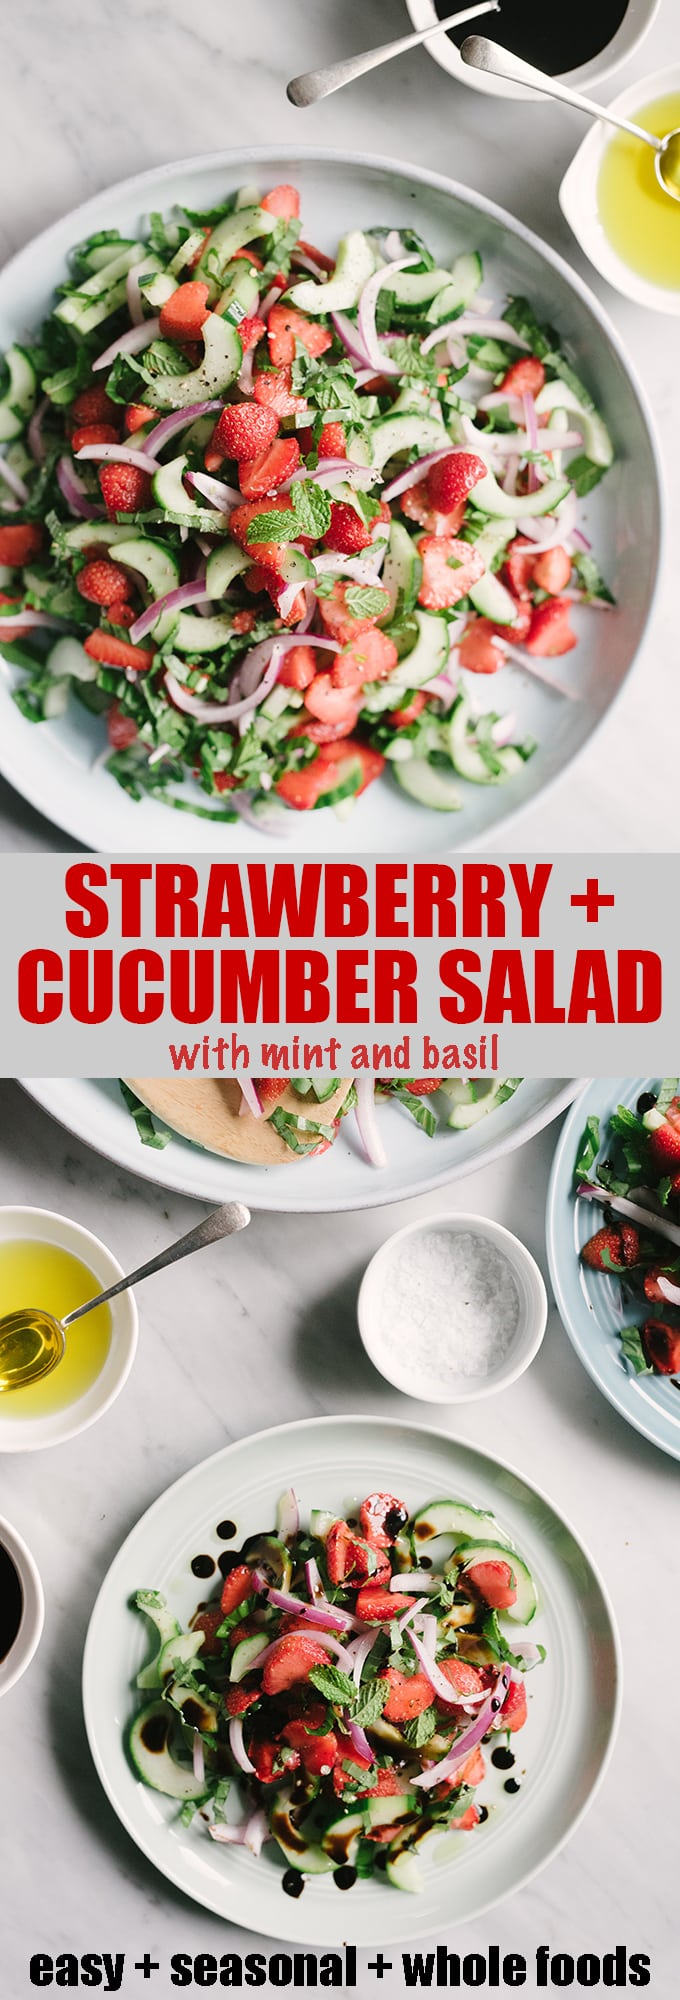 This strawberry cucumber salad recipe is sweet and refreshing with a satisfying crunch in every bite. It's naturally vegan, vegetarian, and gluten-free and an easy and fast summer lunch or side dish. #healthy #wholefood #realfood #eatclean #vegan #vegetarian